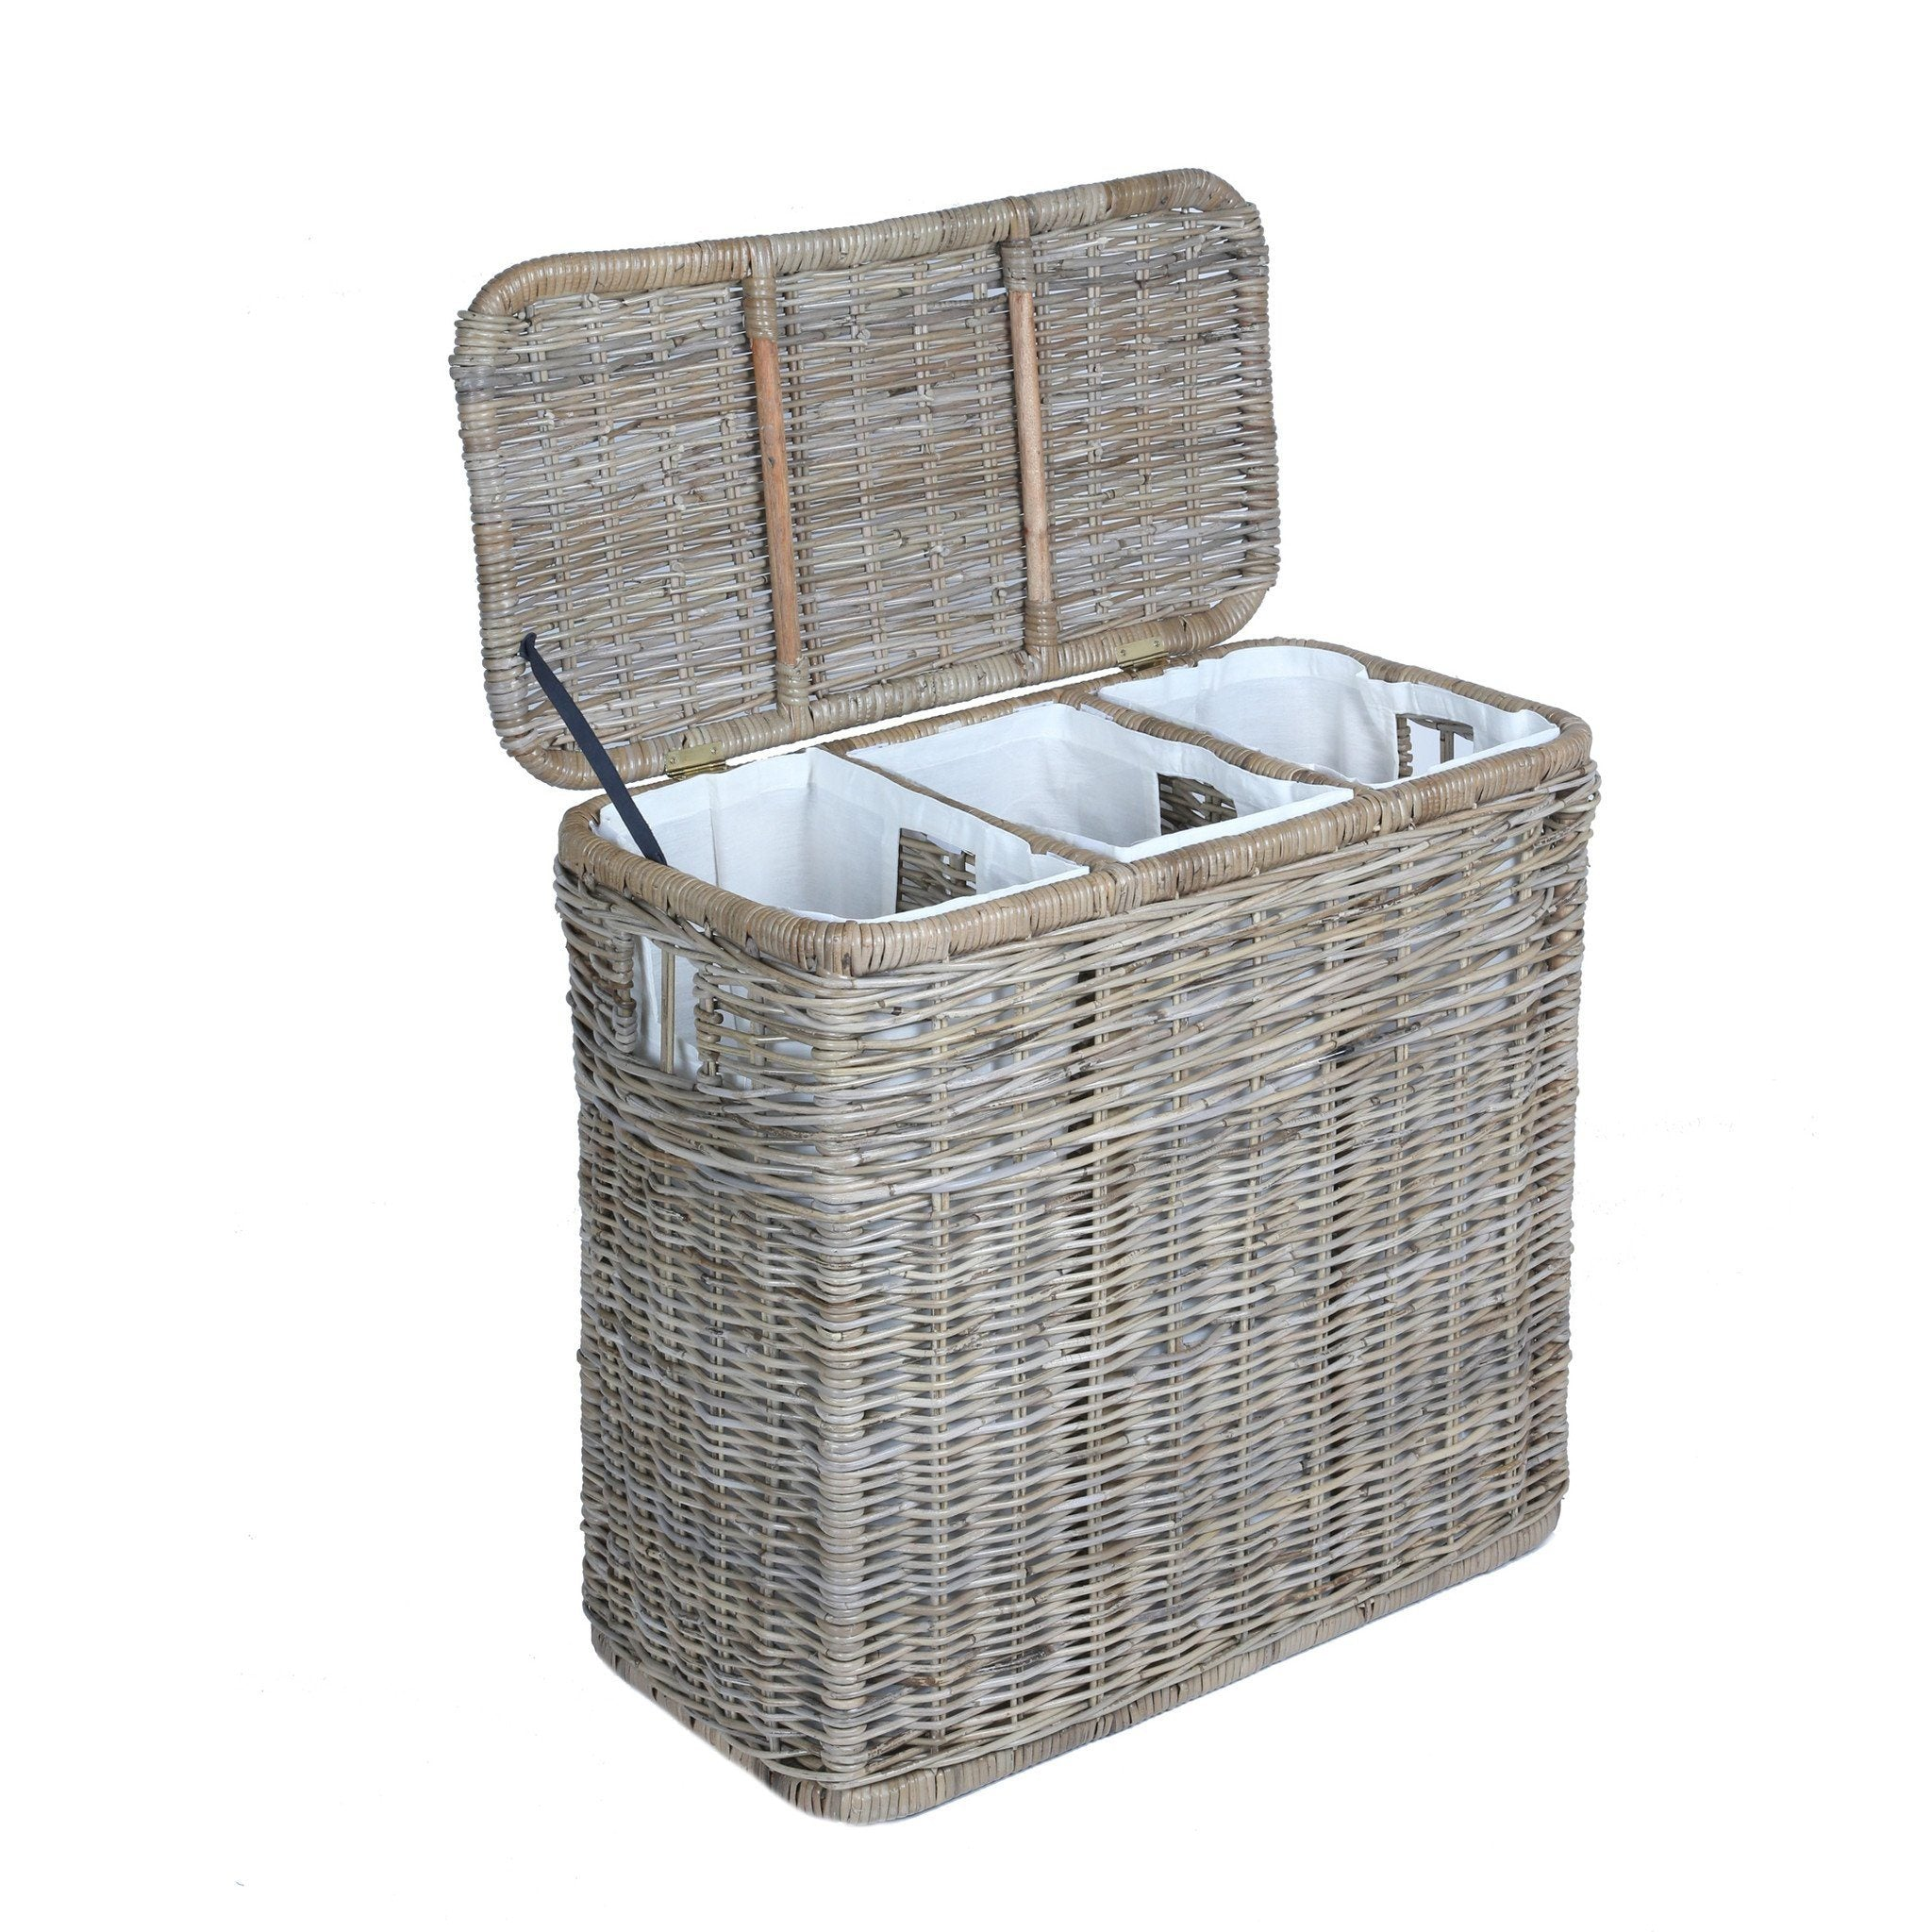 3 compartment wicker laundry hamper the basket lady - Rattan laundry basket with lid ...